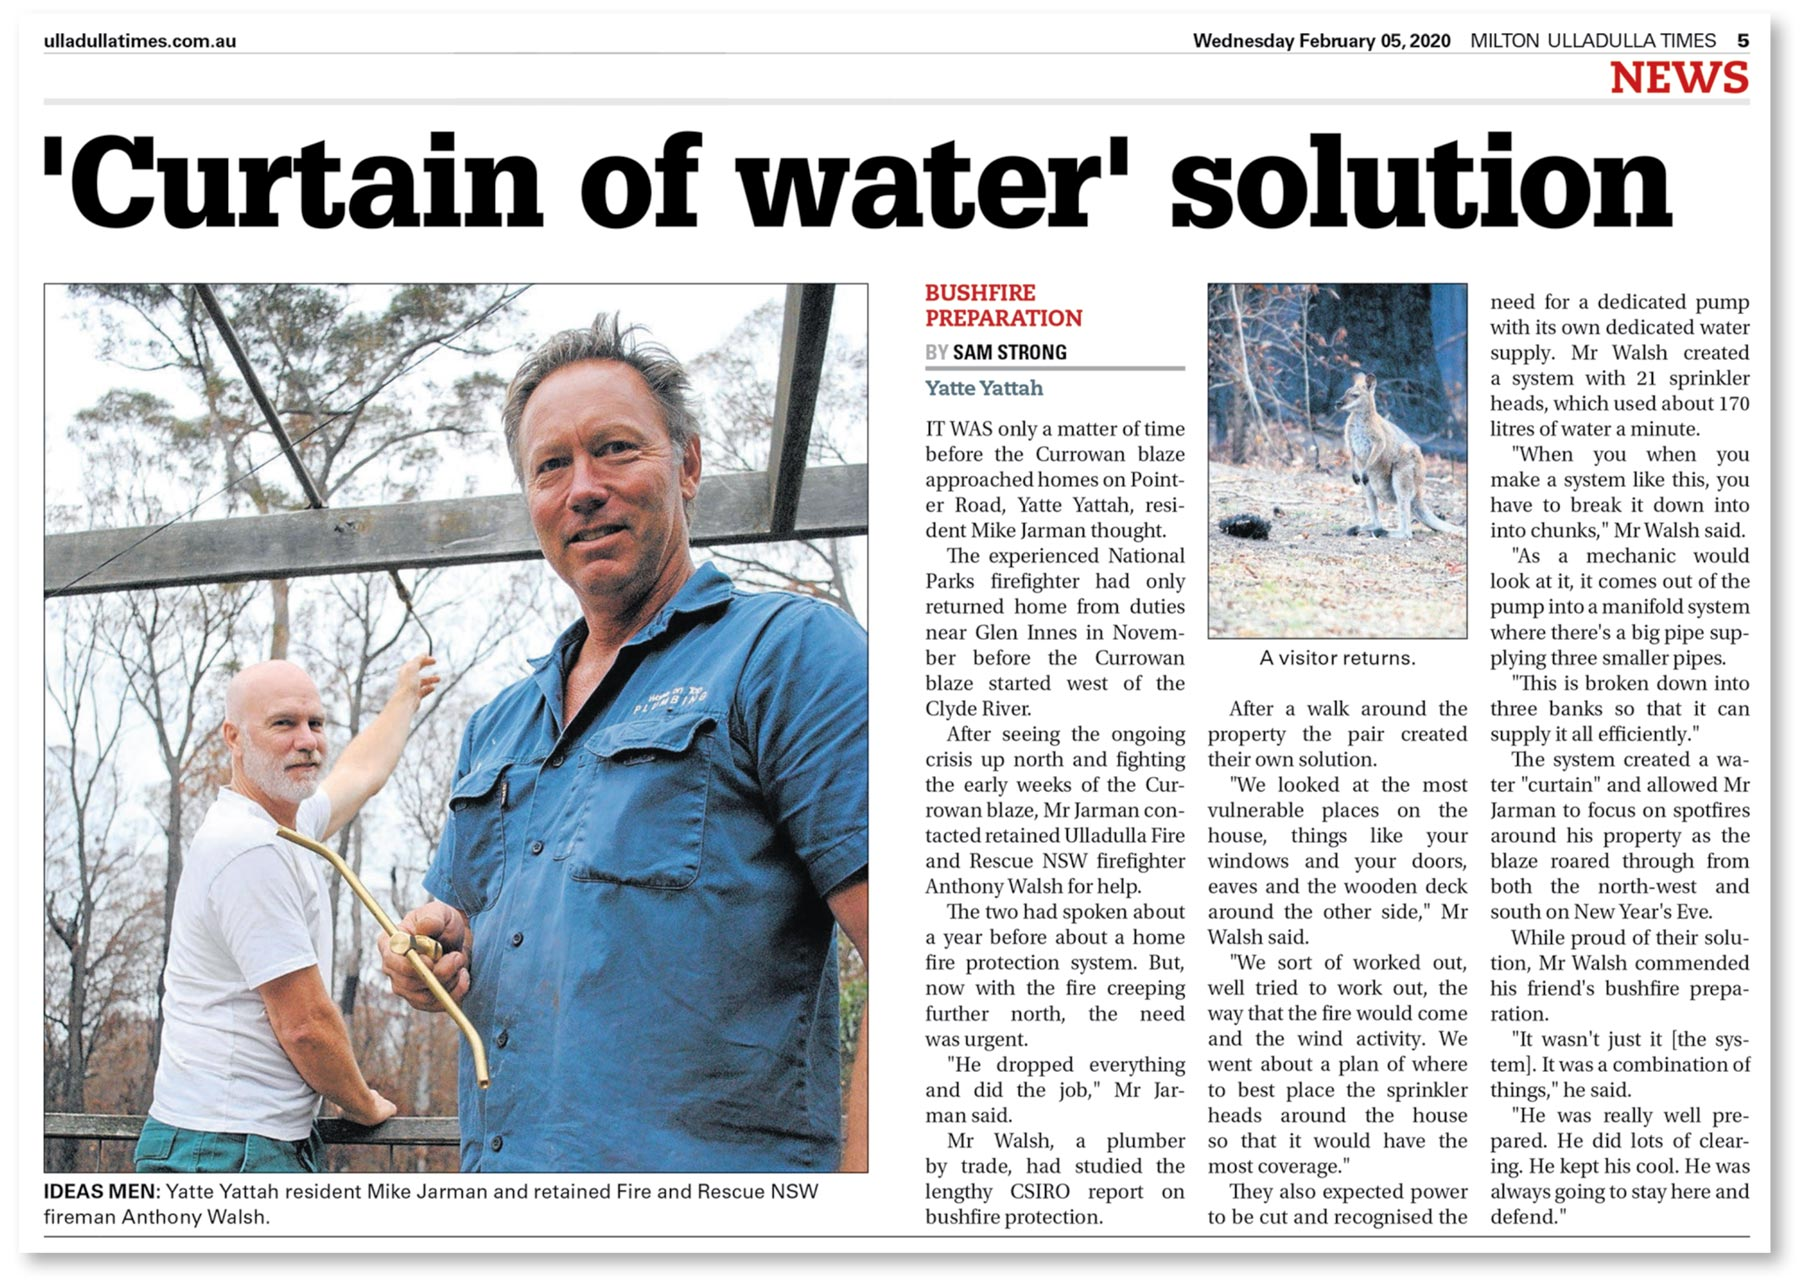 Article from Milton Ulladulla Times, February 5, 2020 about our bushfire sprinkler protection system